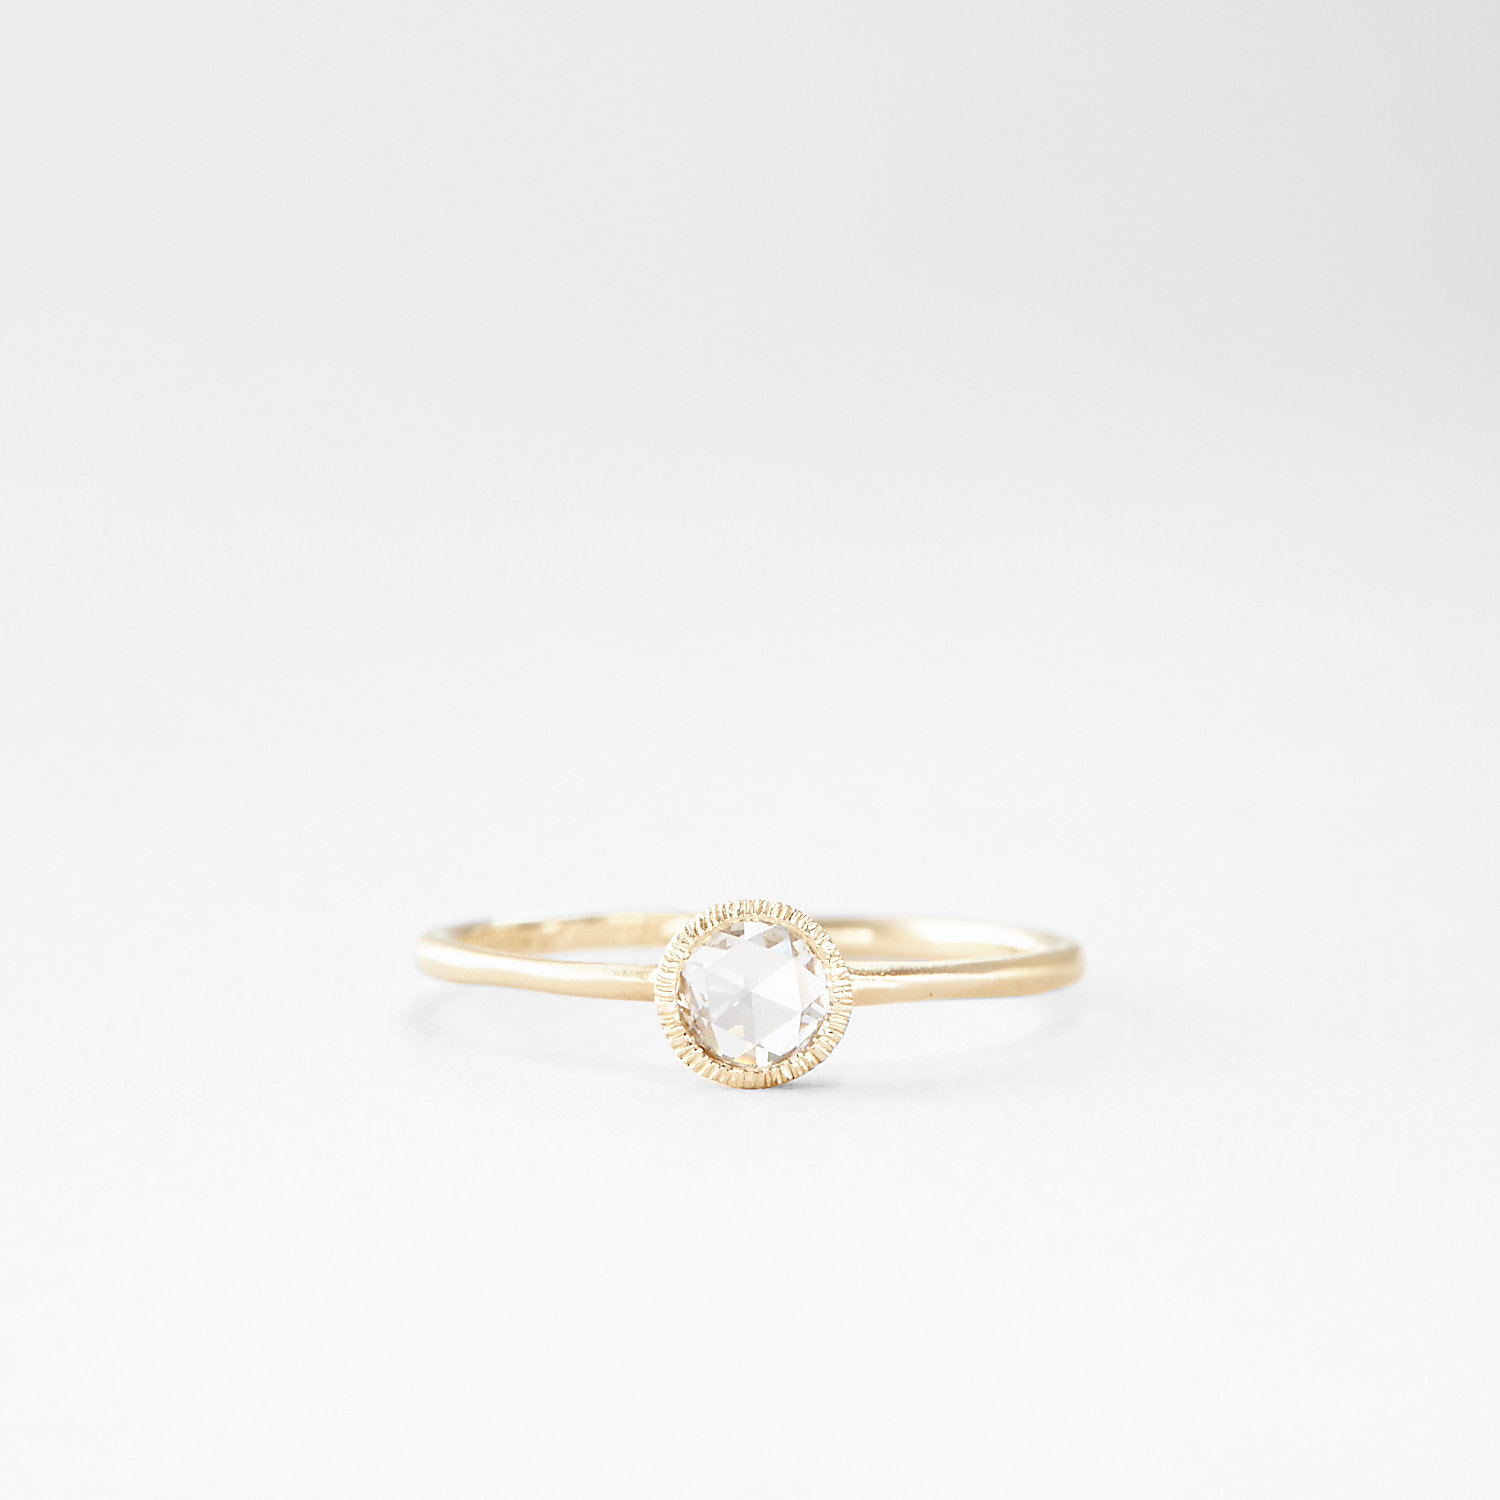 ROSE CUT SOLITAIRE RING